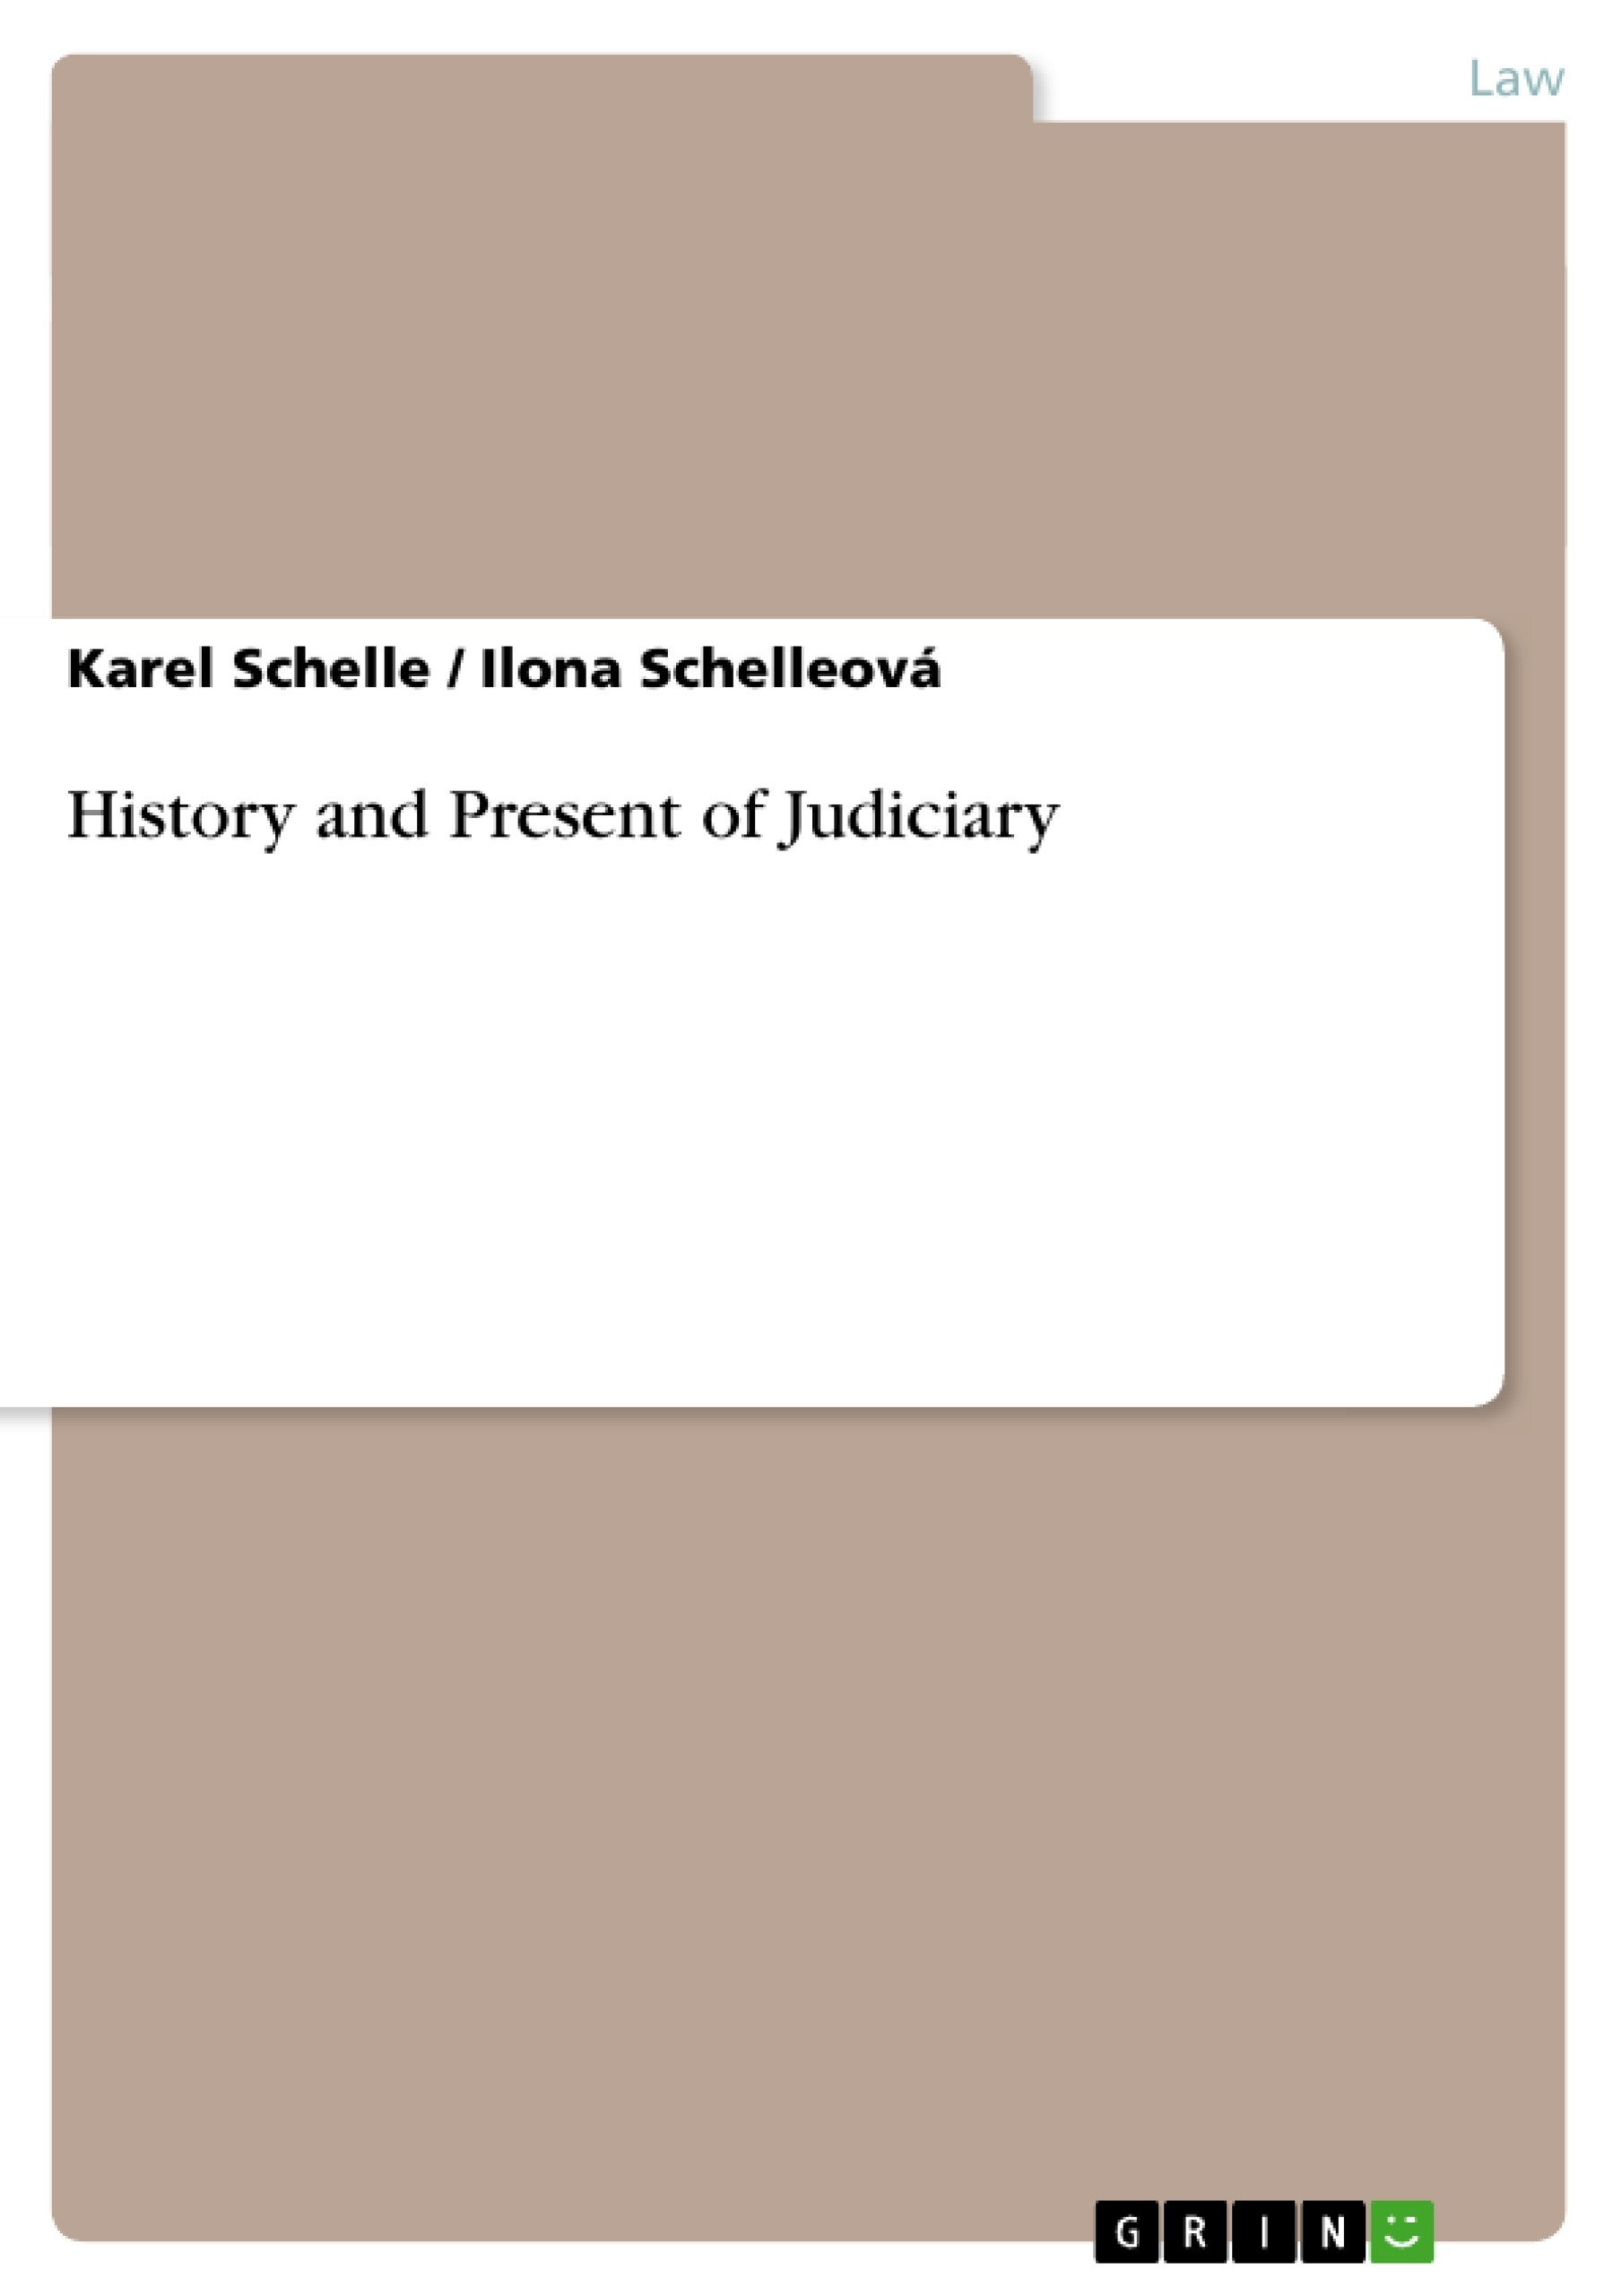 Title: History and Present of Judiciary